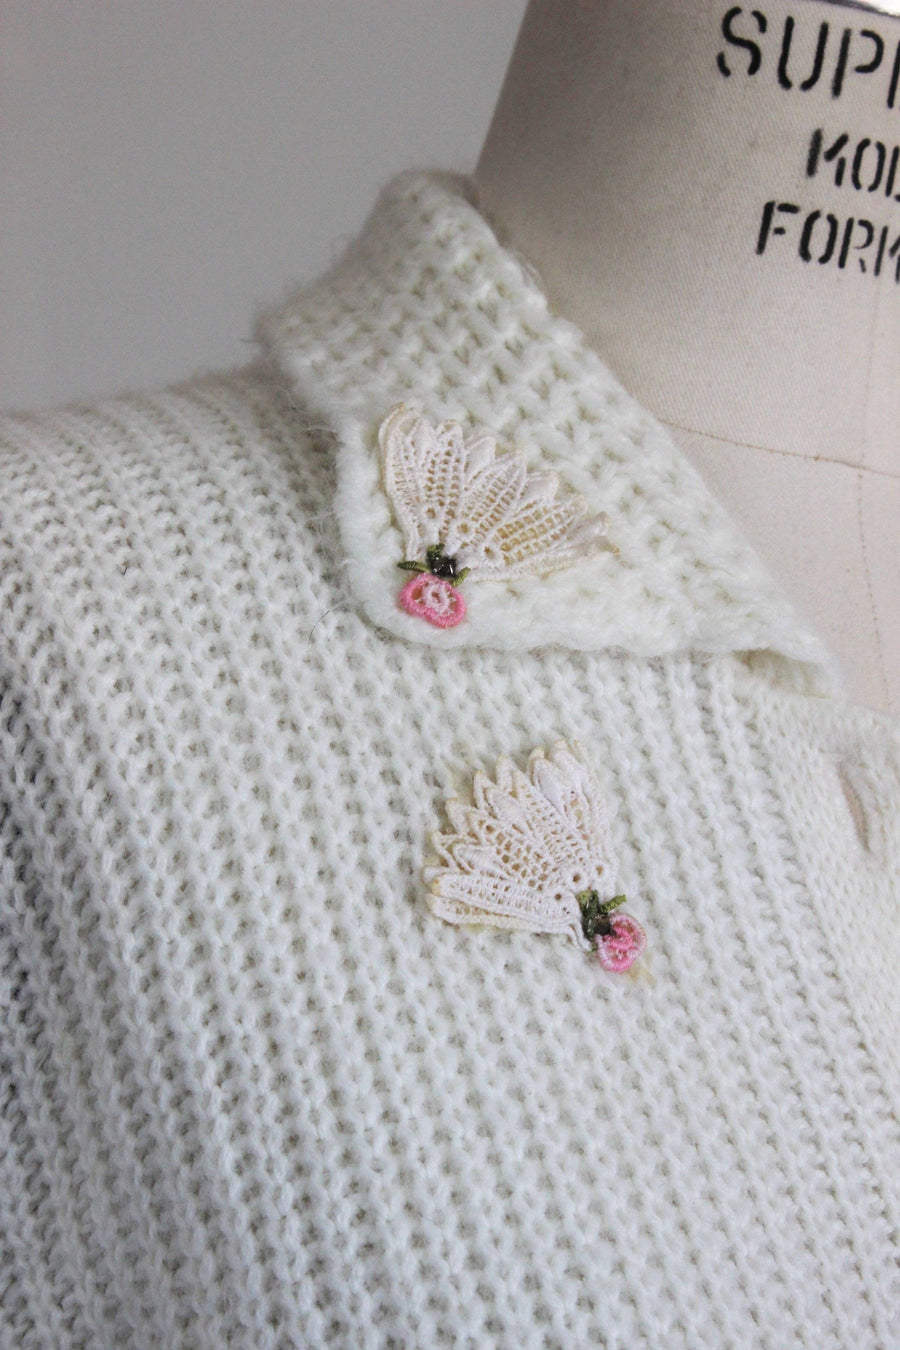 Vintage 1950s Off White Cardigan Sweater, with Fan Appliques